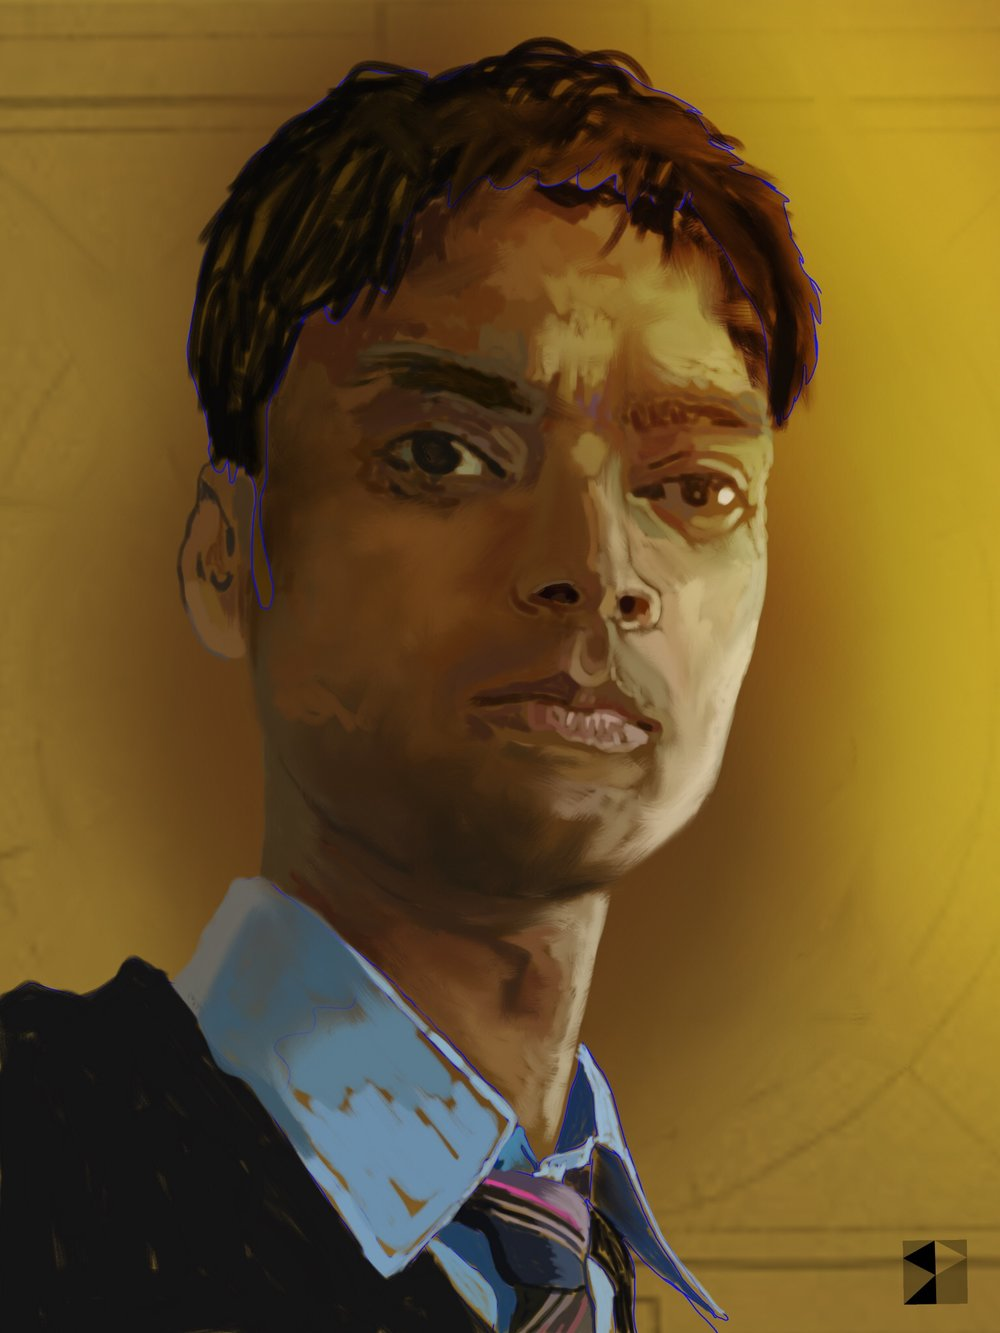 Dilip, Uttar Pradesh  FBSelfie, ProCreate, Pencil 53, Photoshop, iPad, Desktop Digital Image Dimensions Variable © SP/MWW.2015